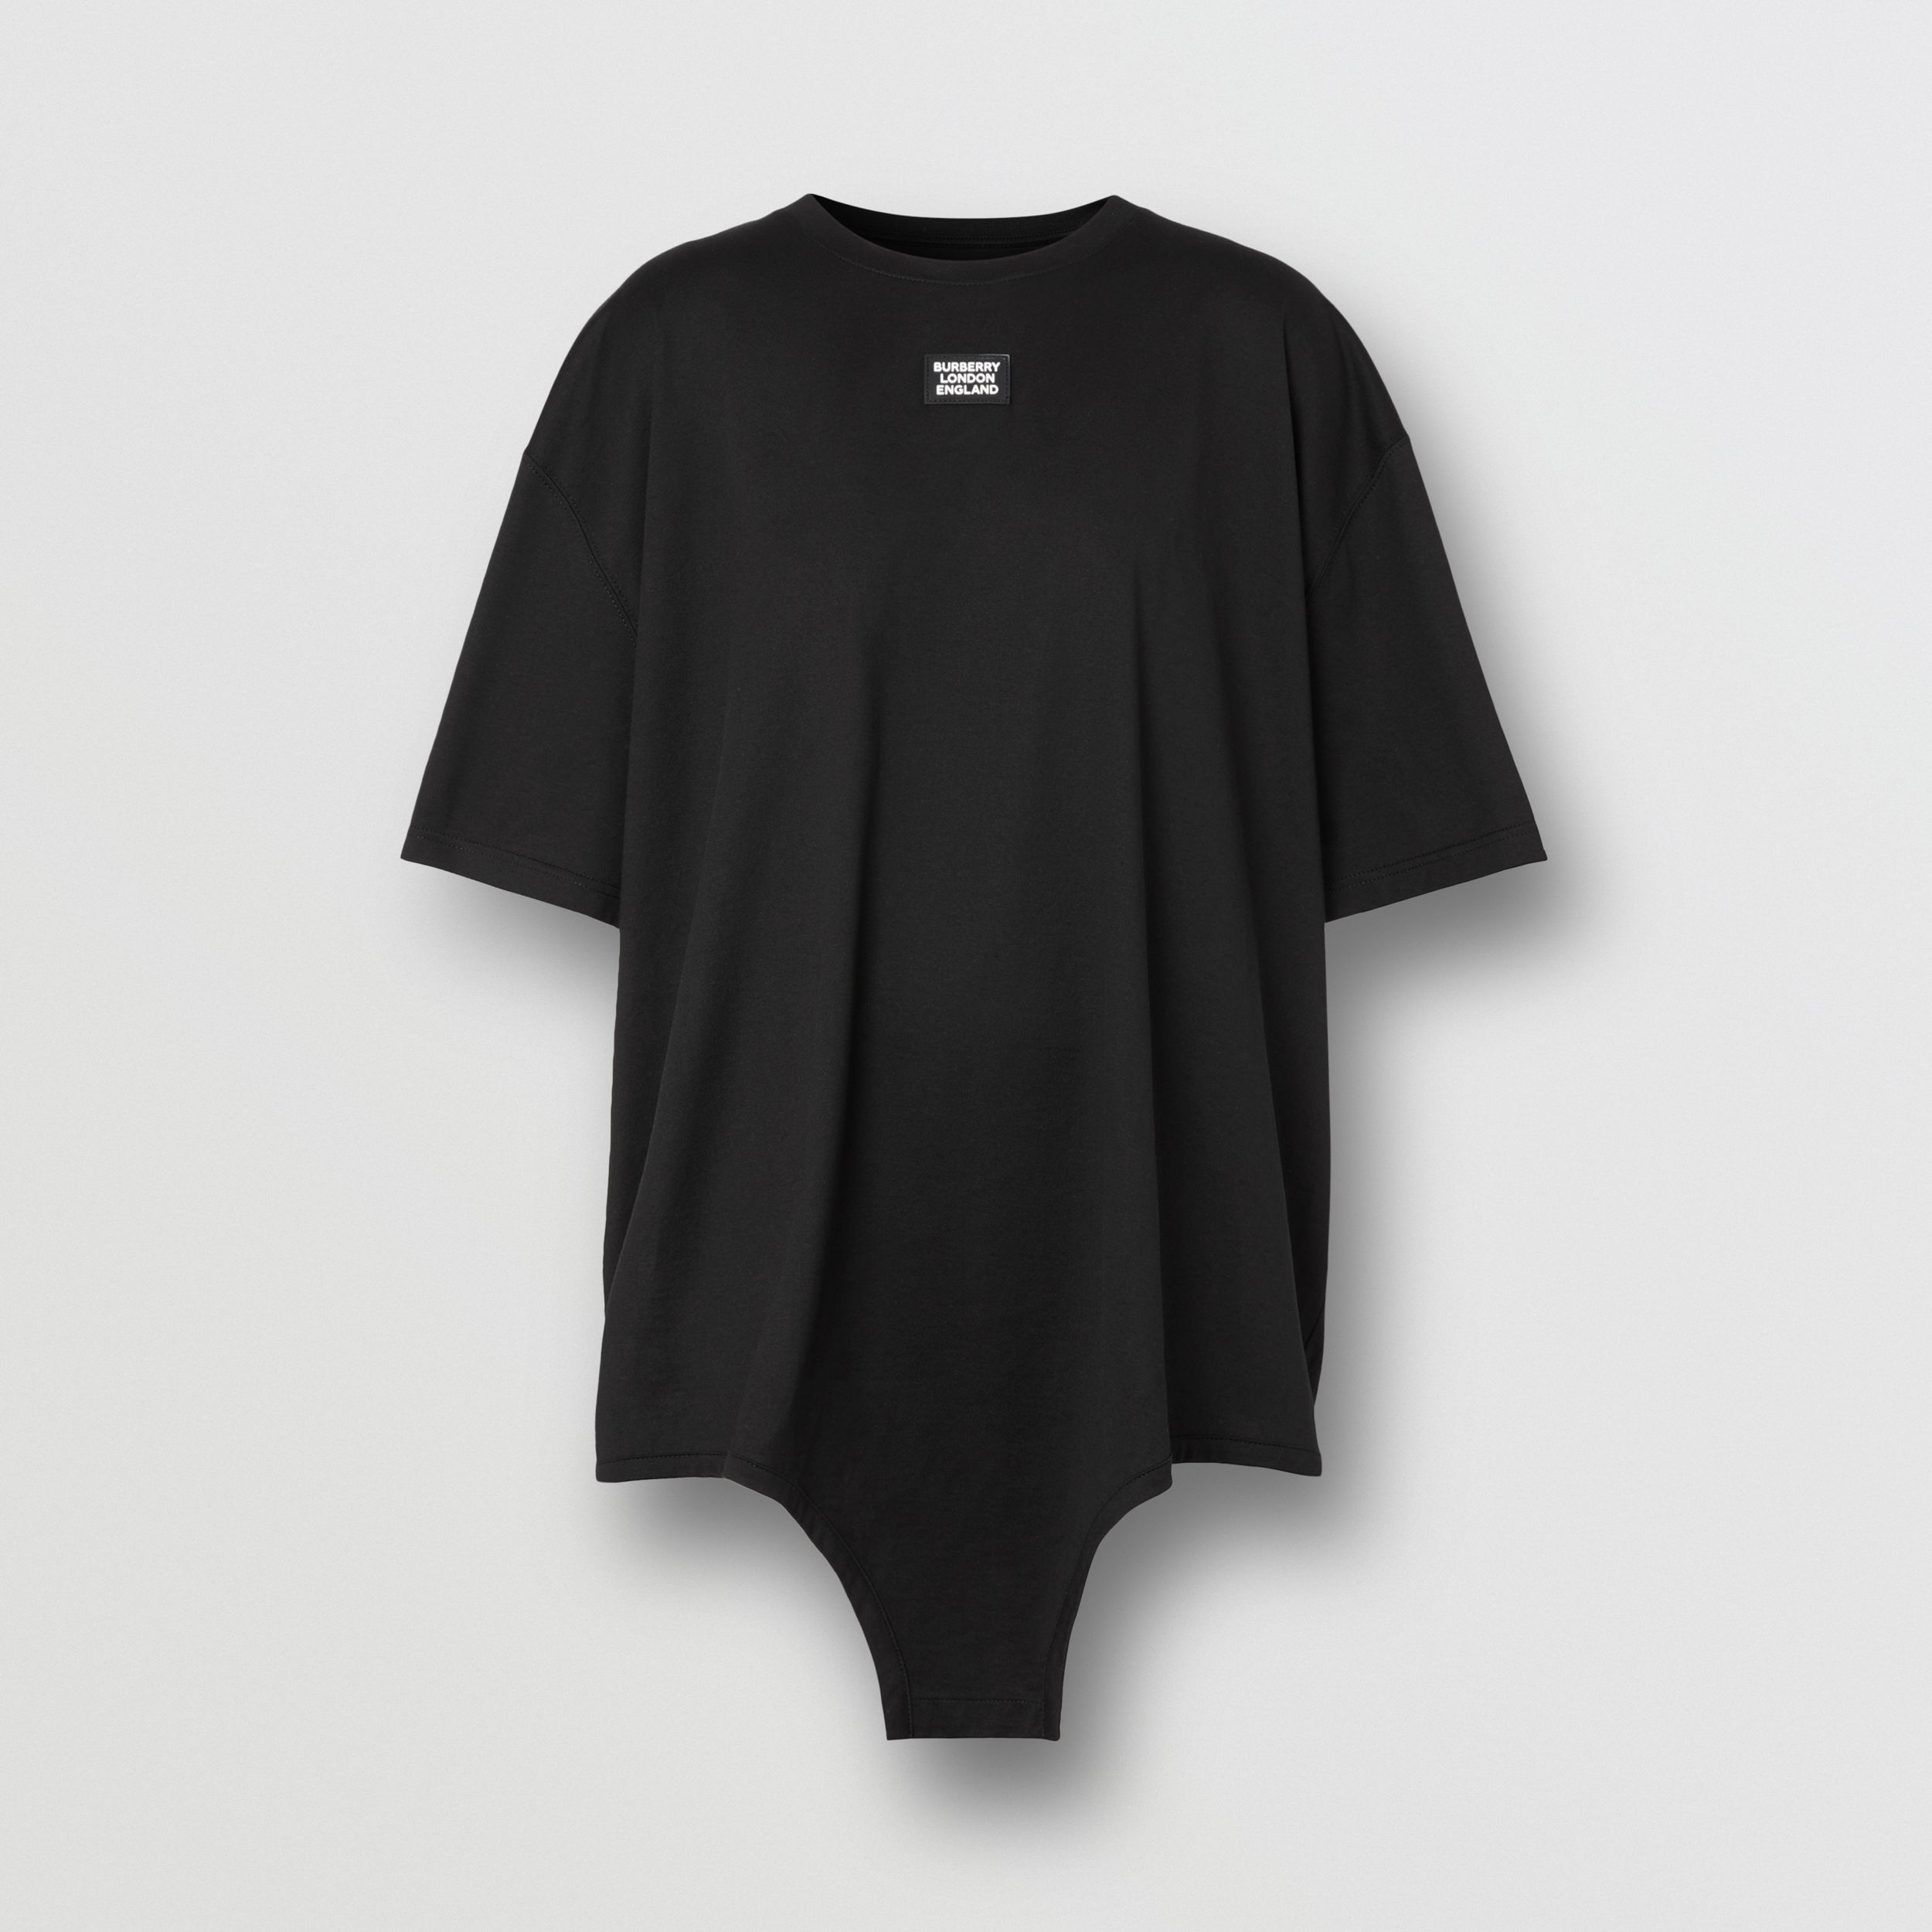 Cut-out Hem Logo Appliqué Cotton Oversized T-shirt in Black - Women | Burberry - 4